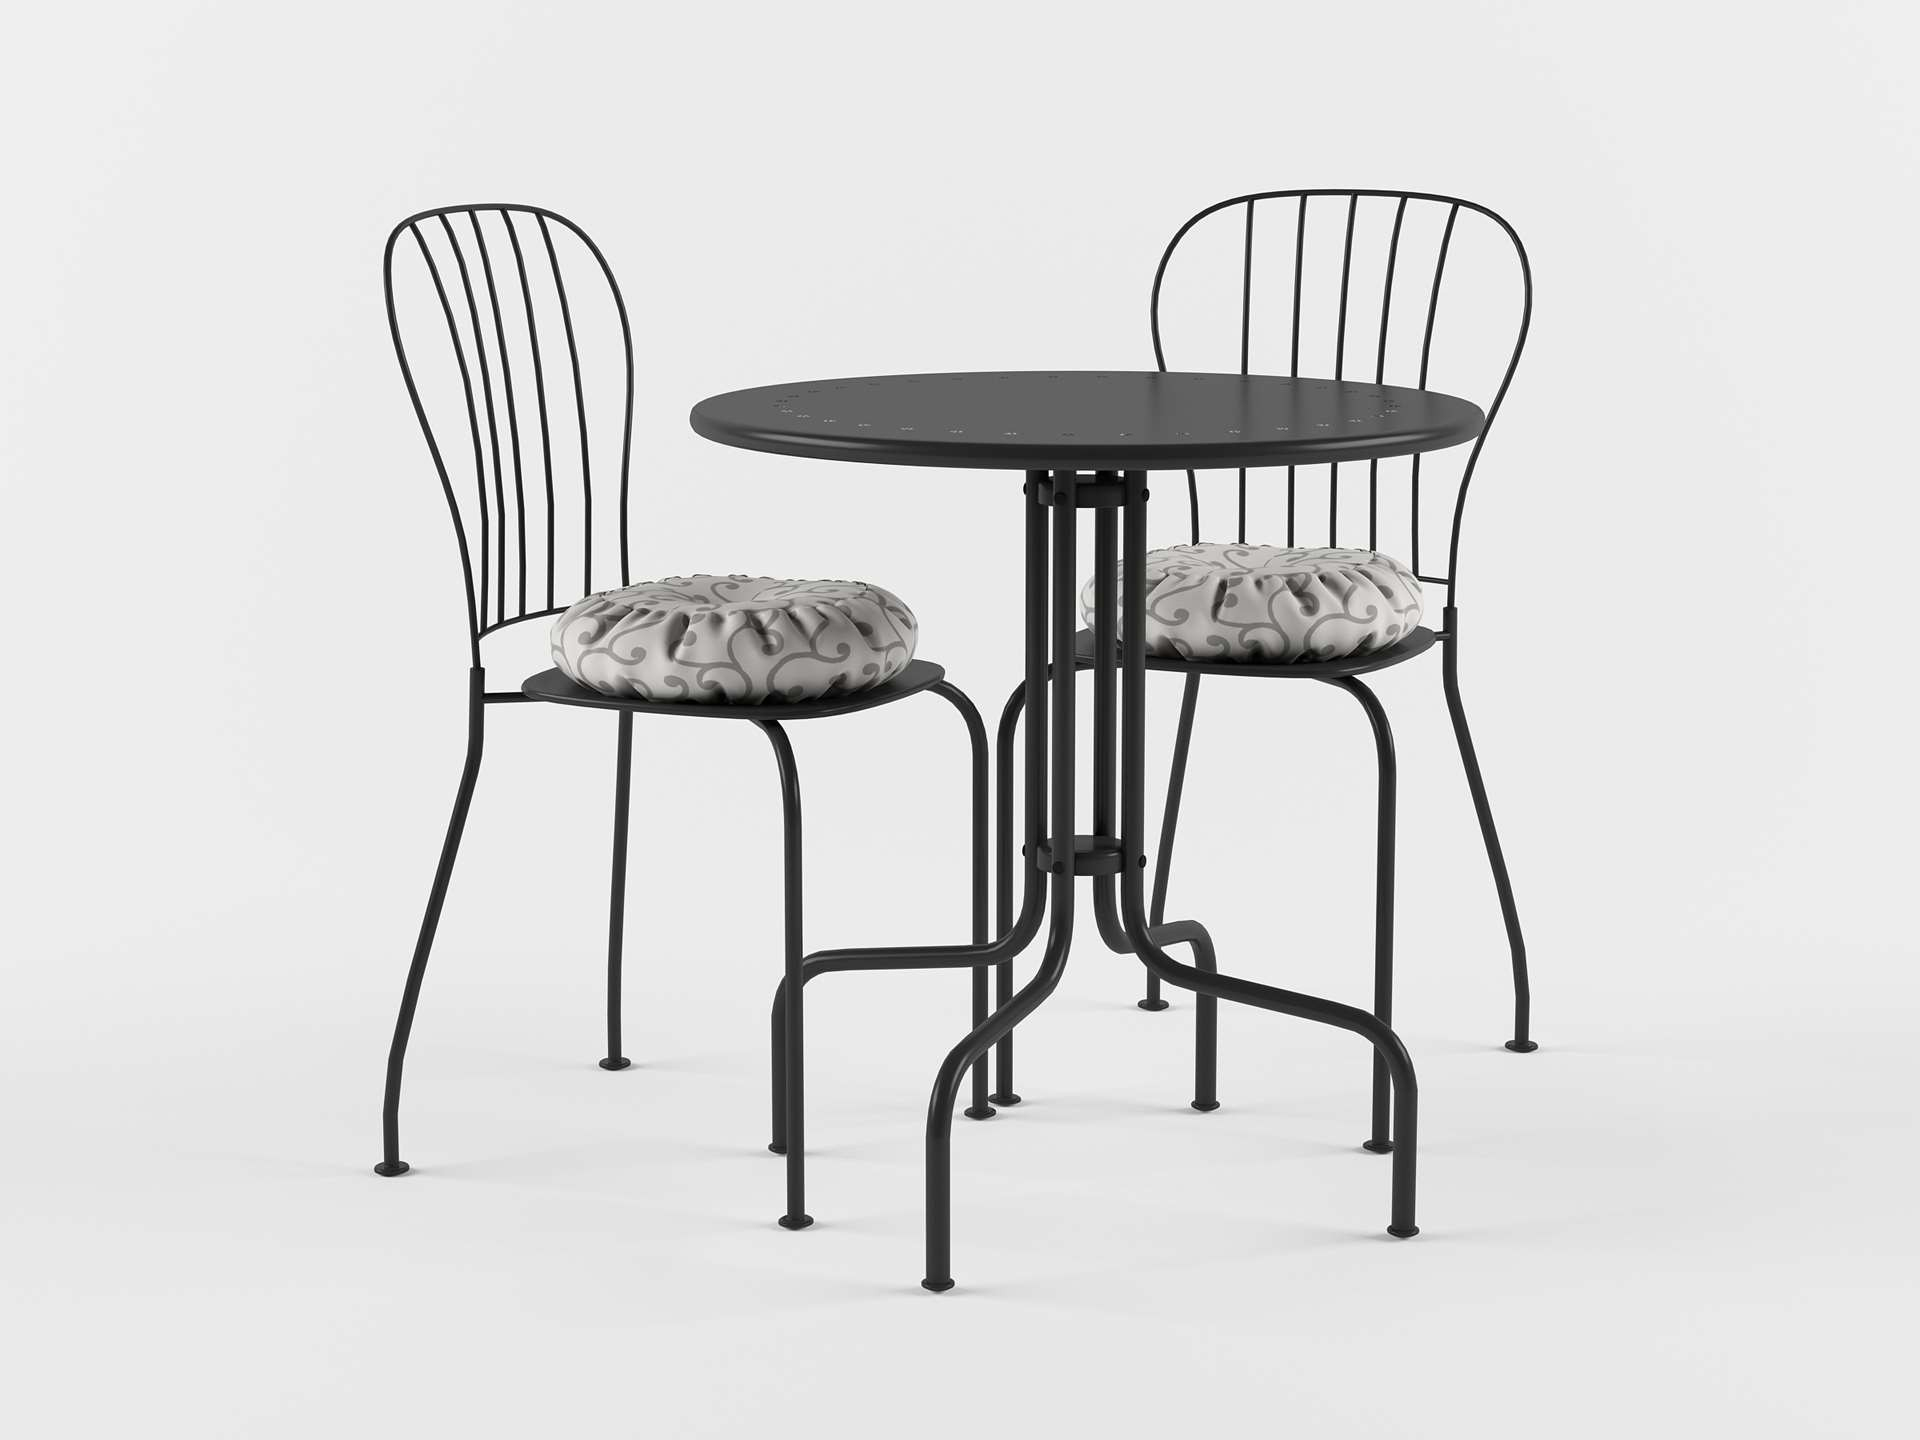 Lacko Table And Chair Diseño 3D Muebles Ikea avec Tables De Jardin Ikea